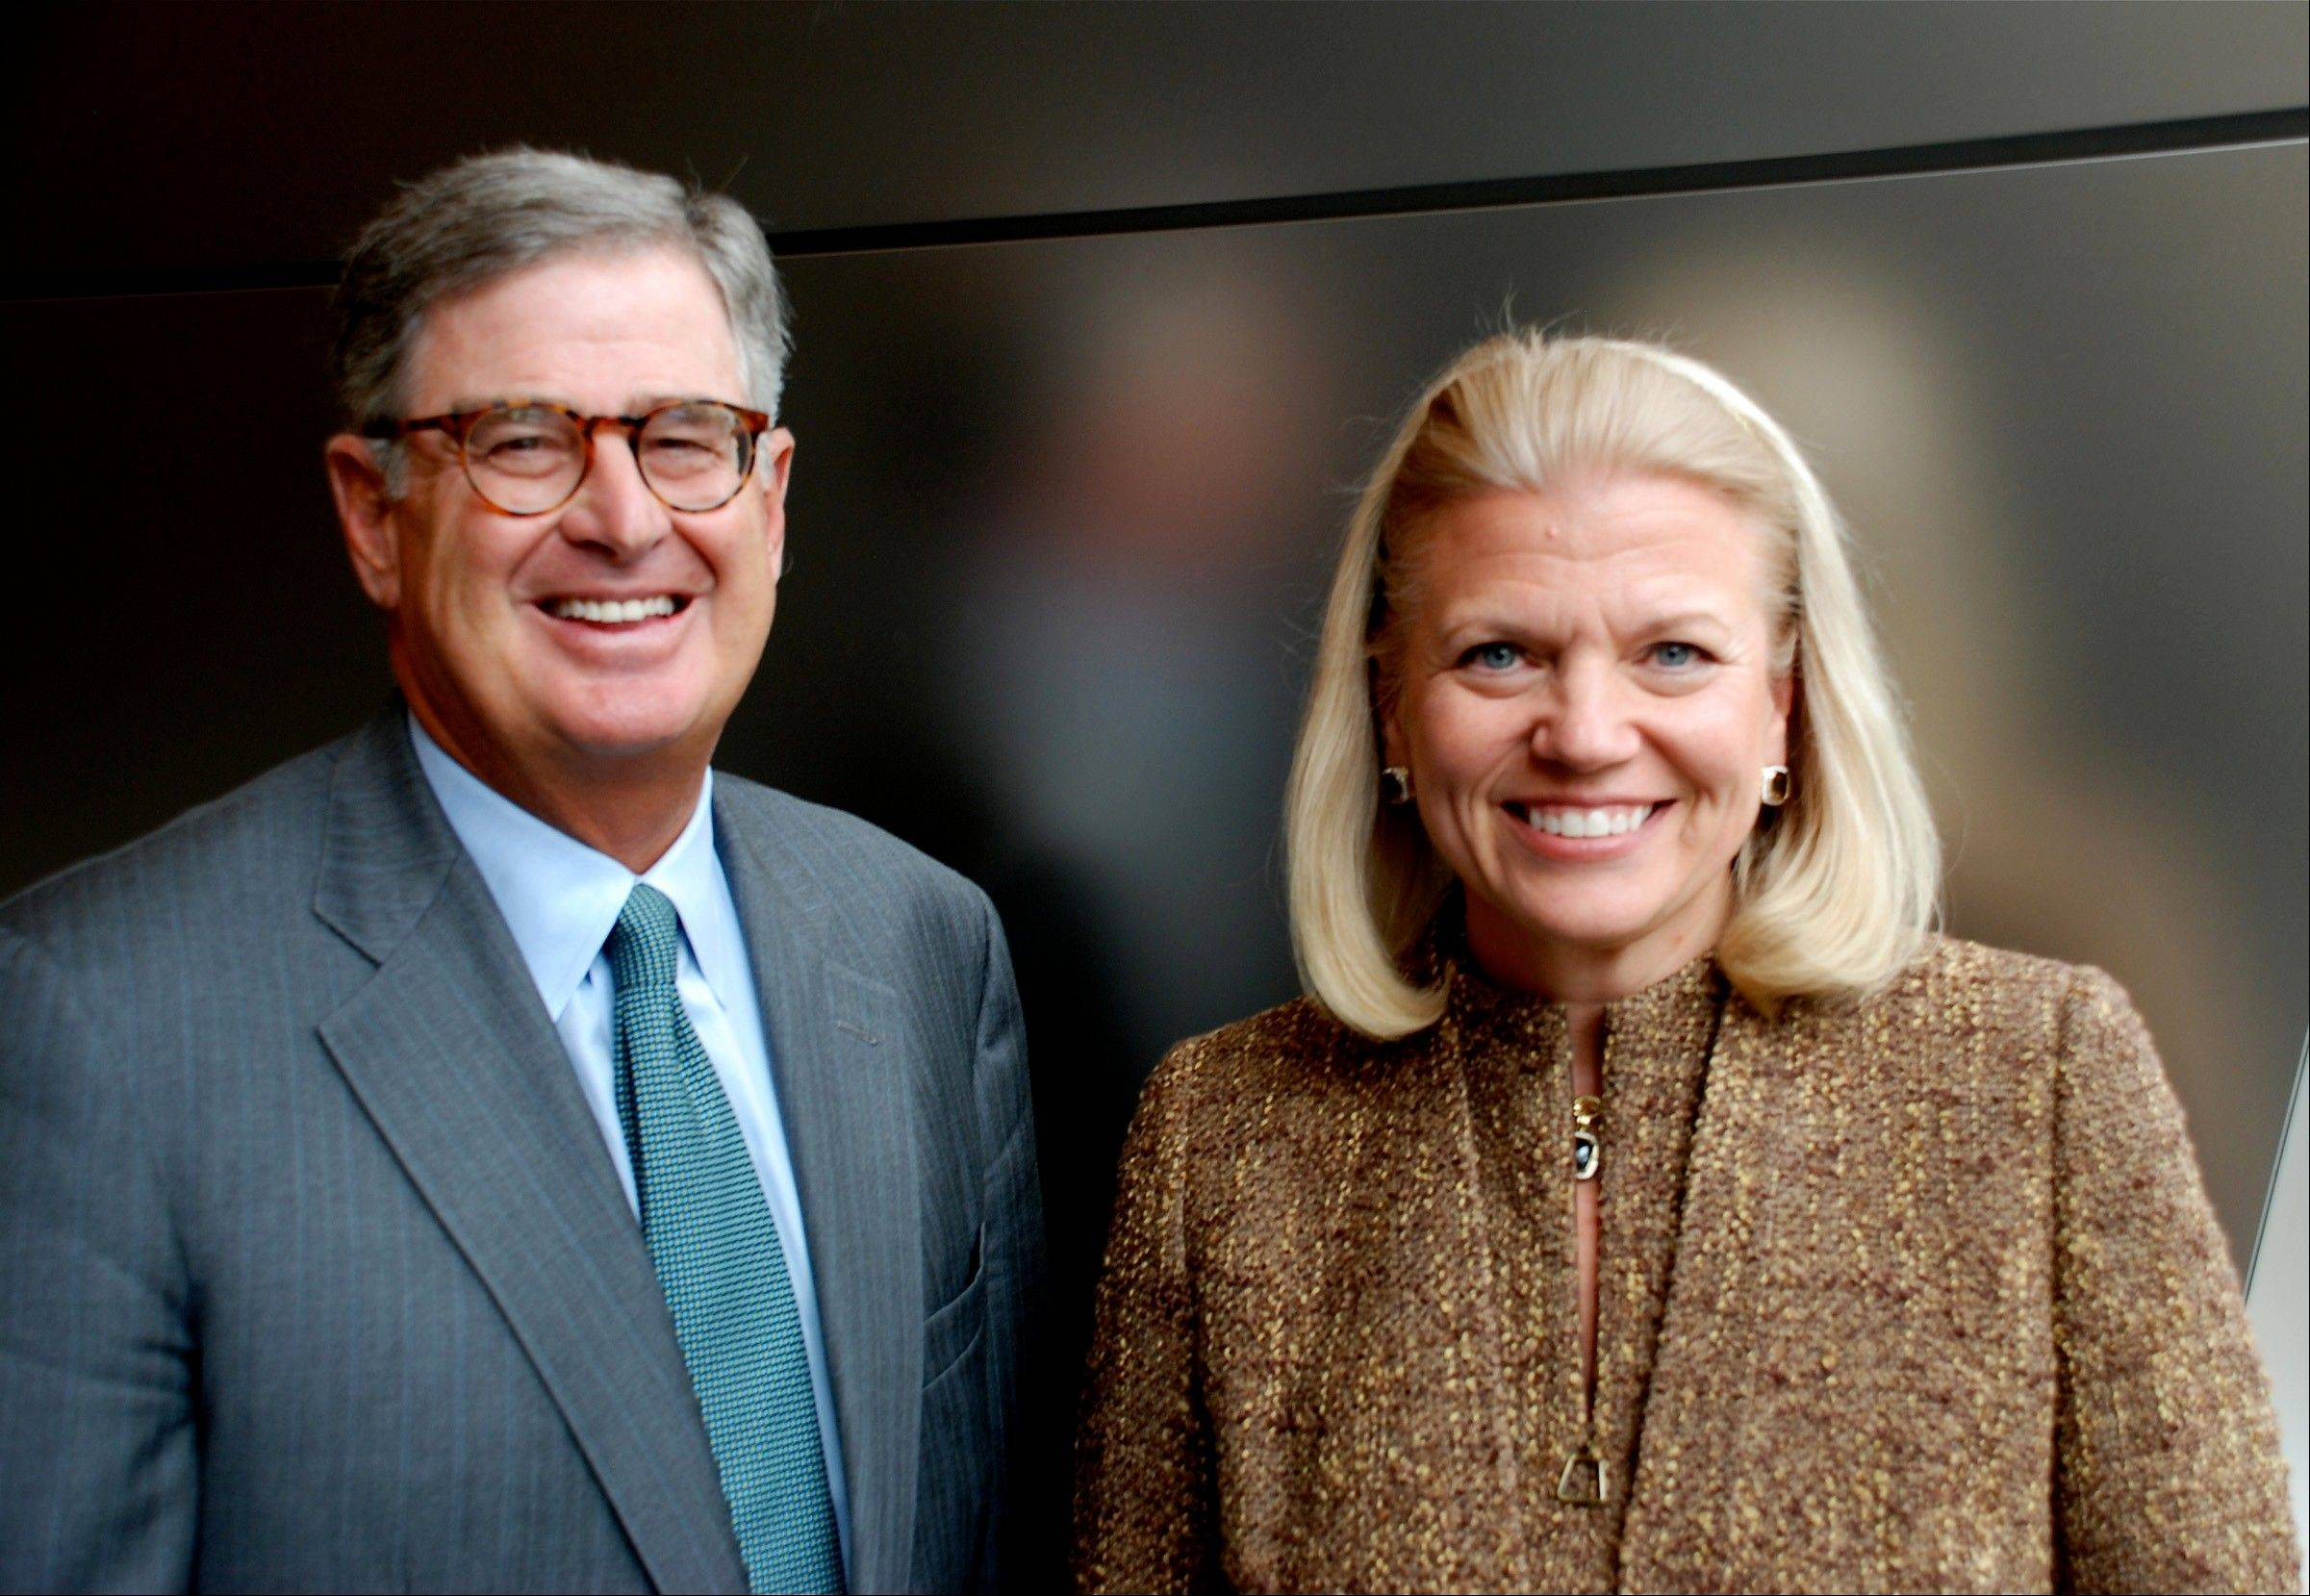 ASSOCIATED PRESSIBM CEO Ginni Rometty, right, will succeed former CEO Sam Palmisano, left, as chairman of the board, it was announced Tuesday.